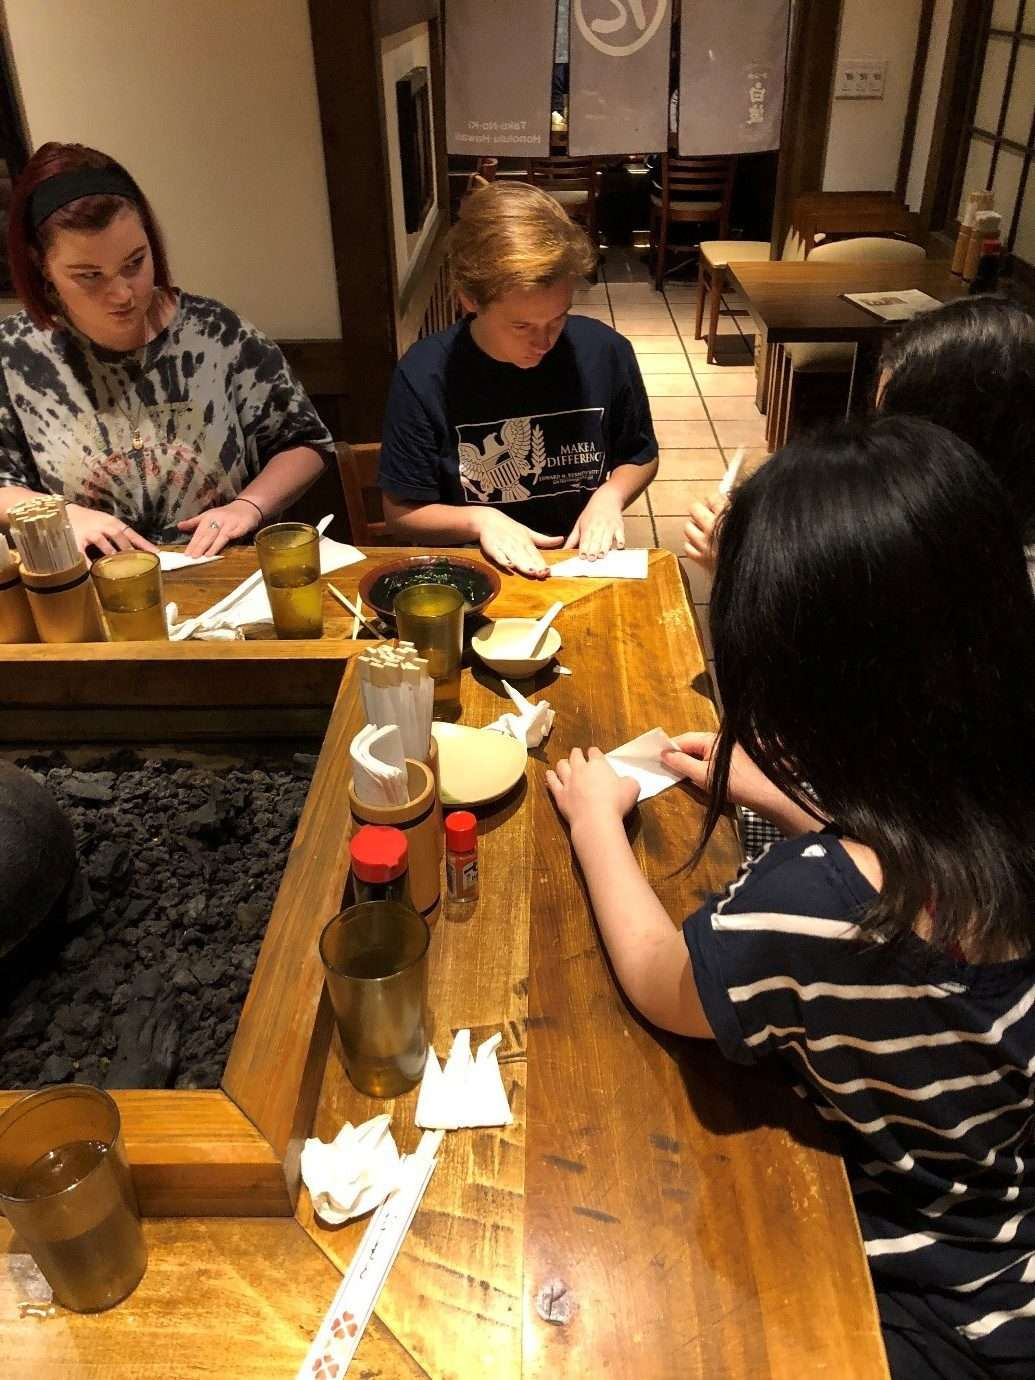 The group making paper cranes at dinner. Image: Jeff Fletcher / ANMM.